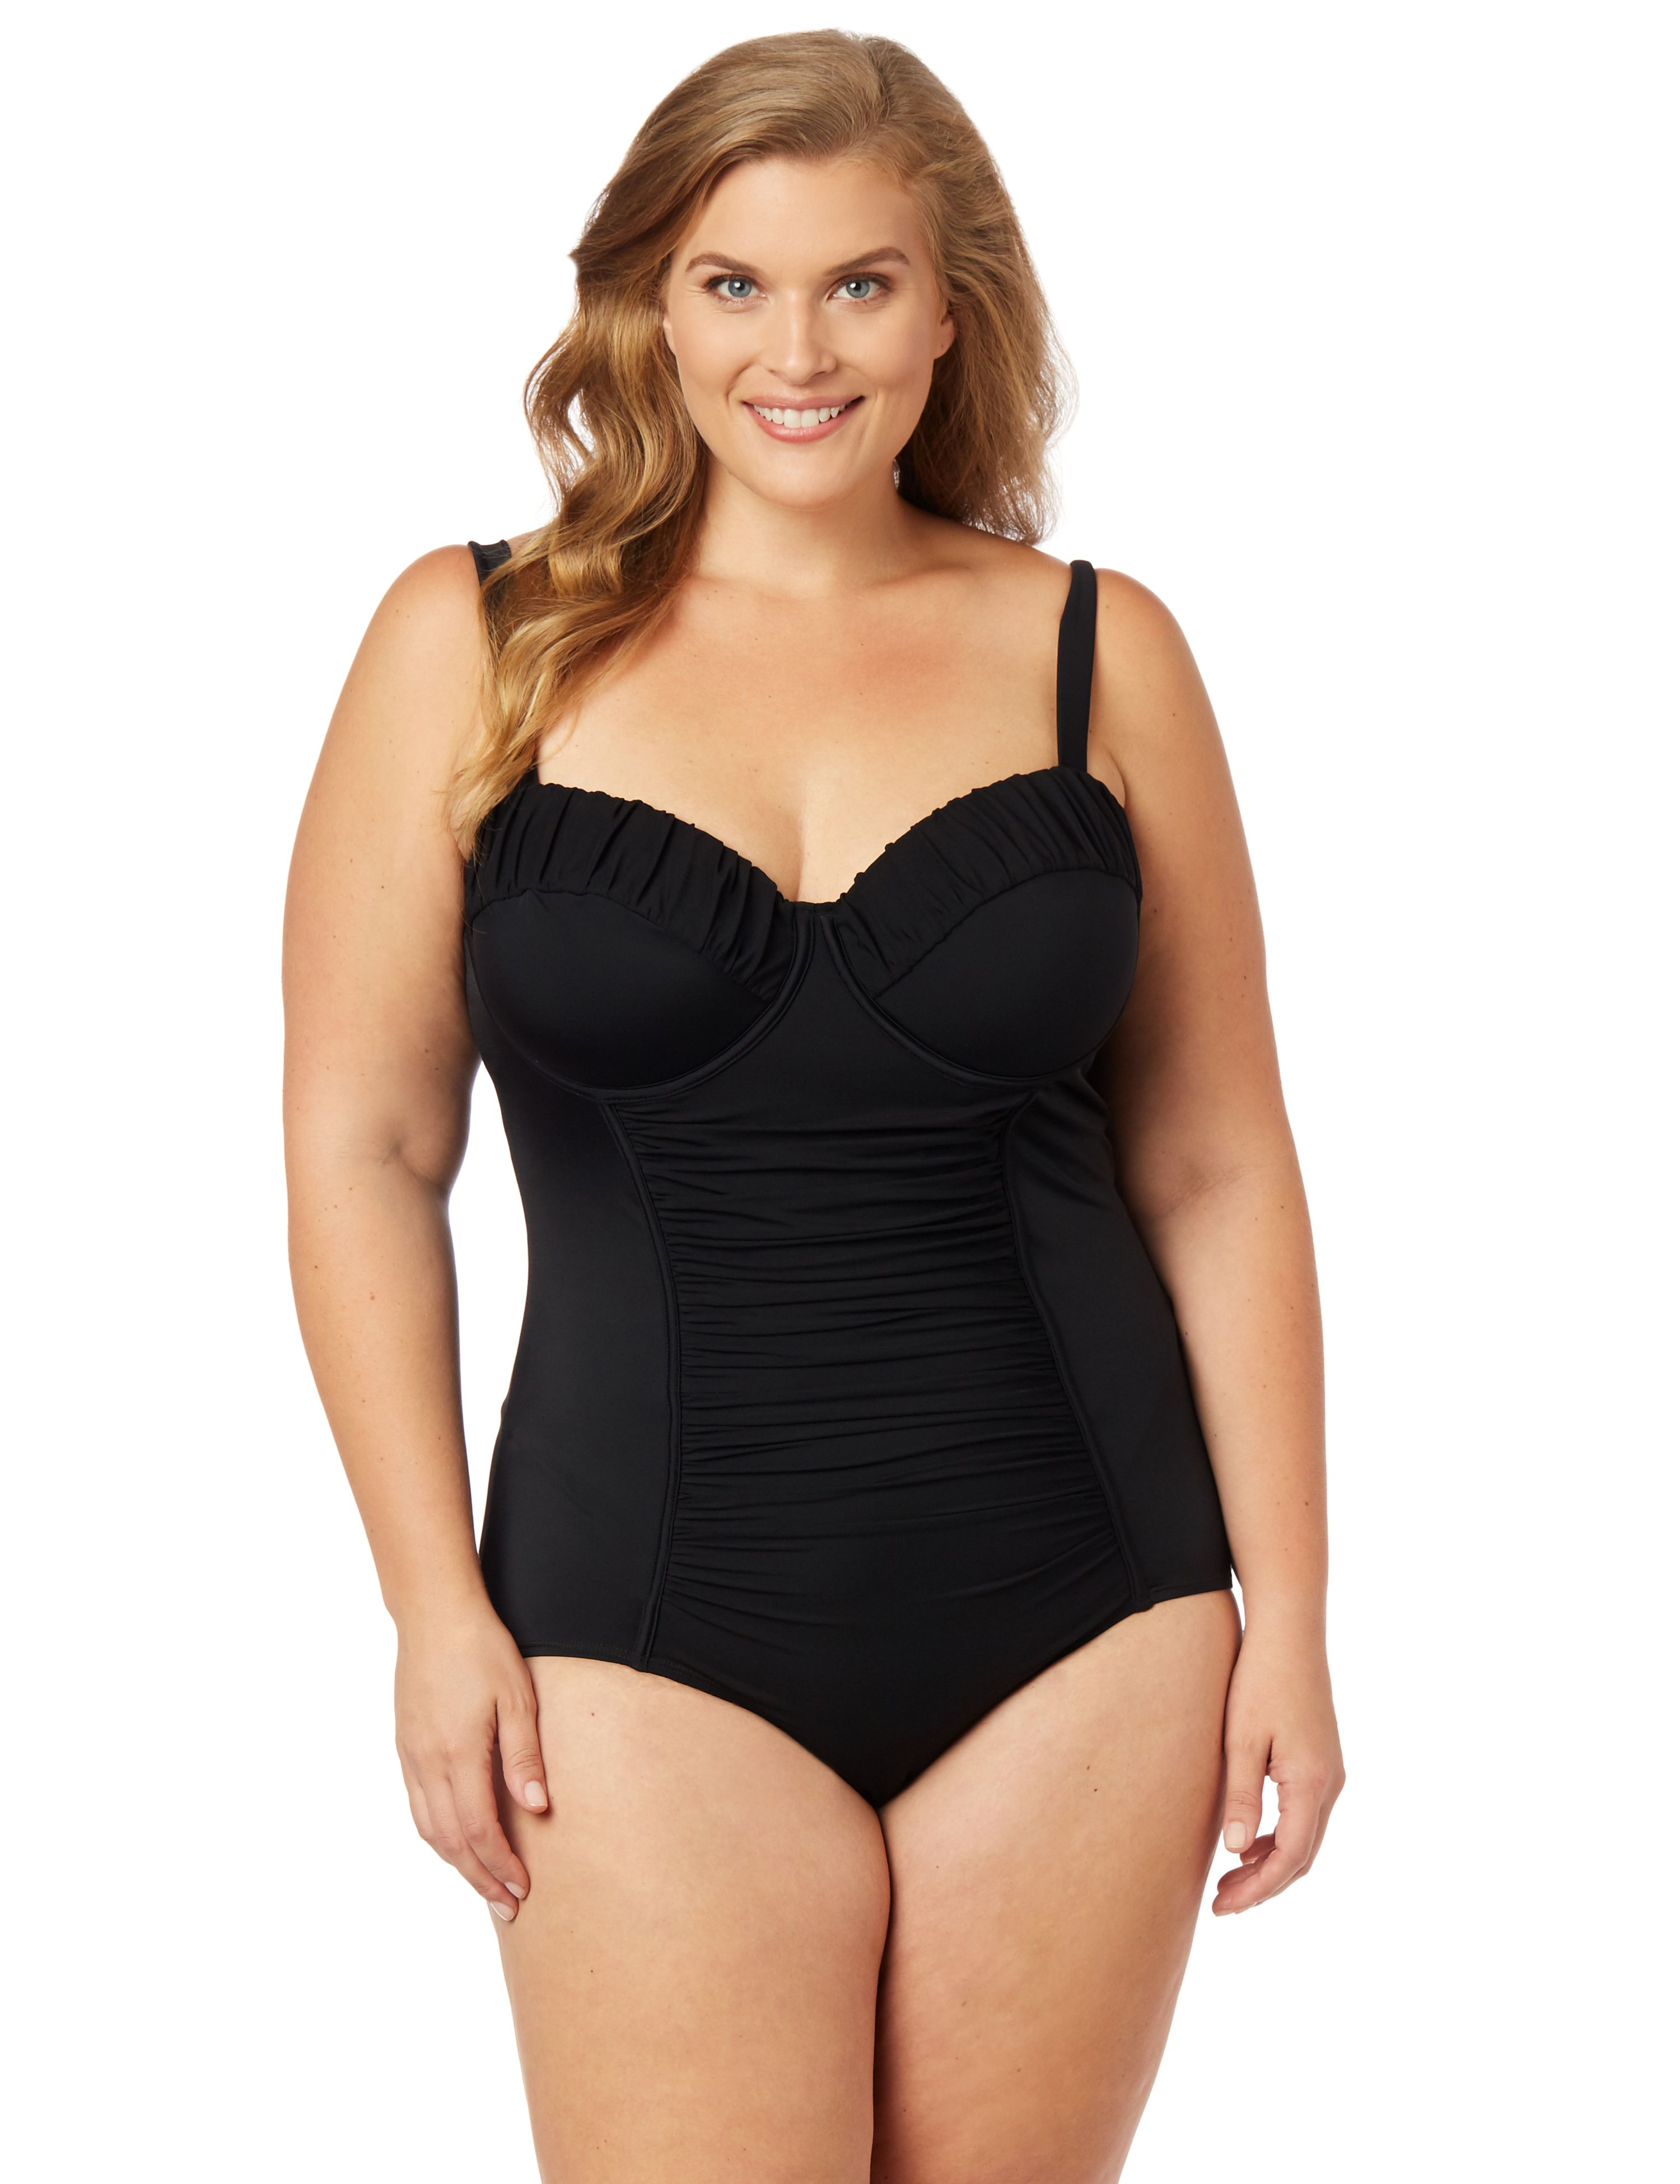 Retro Plus Size Swimsuits Retro Swimsuit $58.99 AT vintagedancer.com